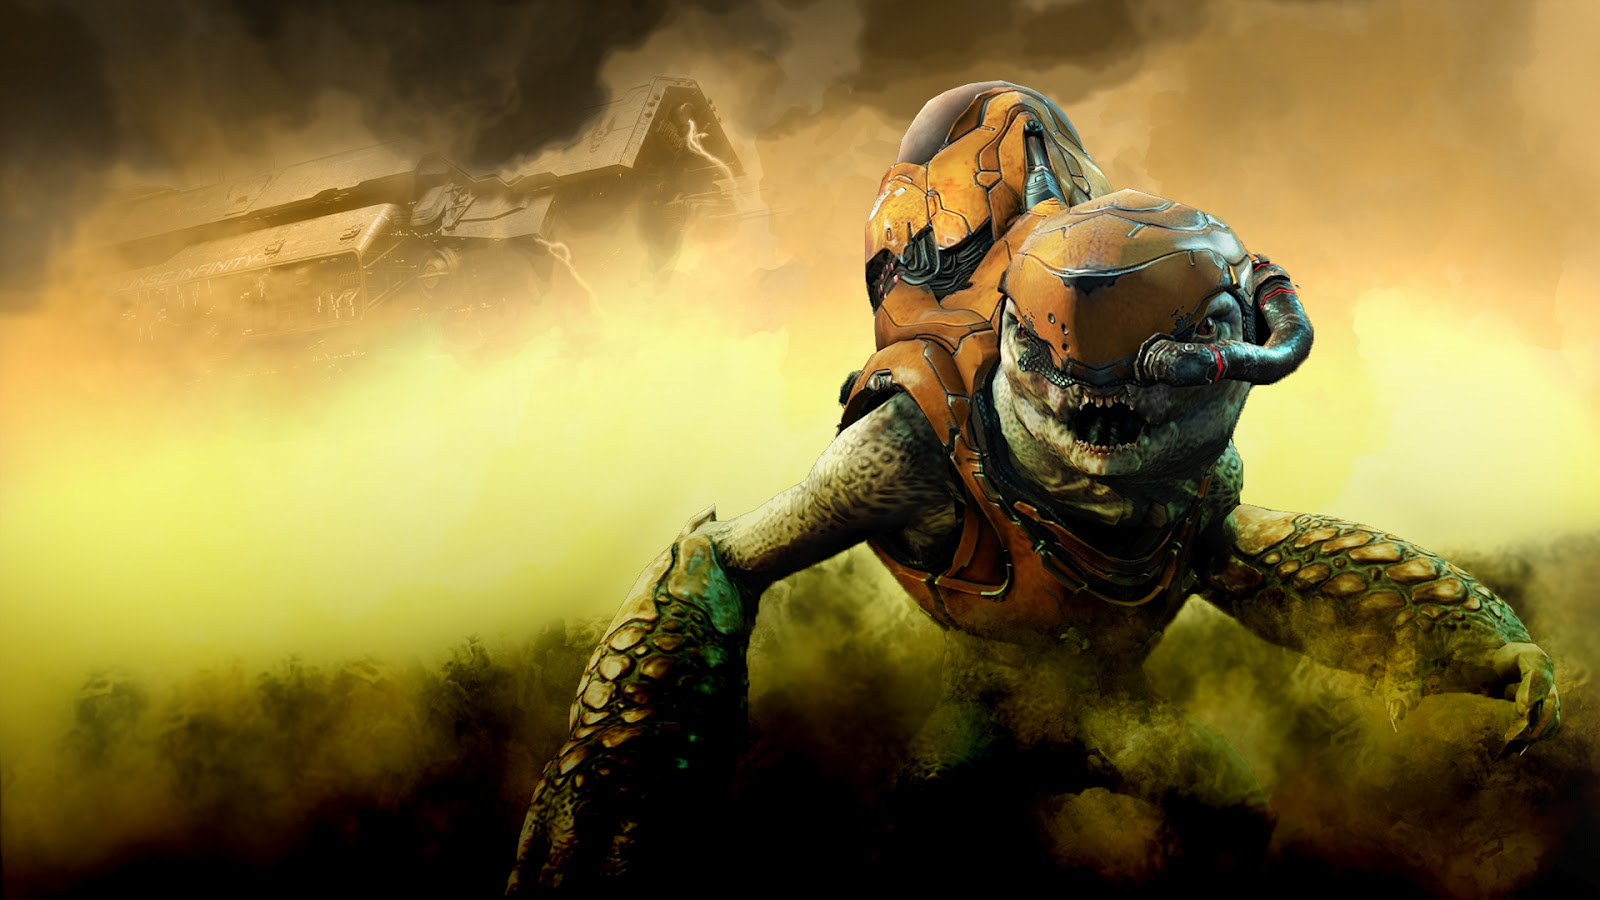 Cool Halo 4 Wallpapers 1600x900